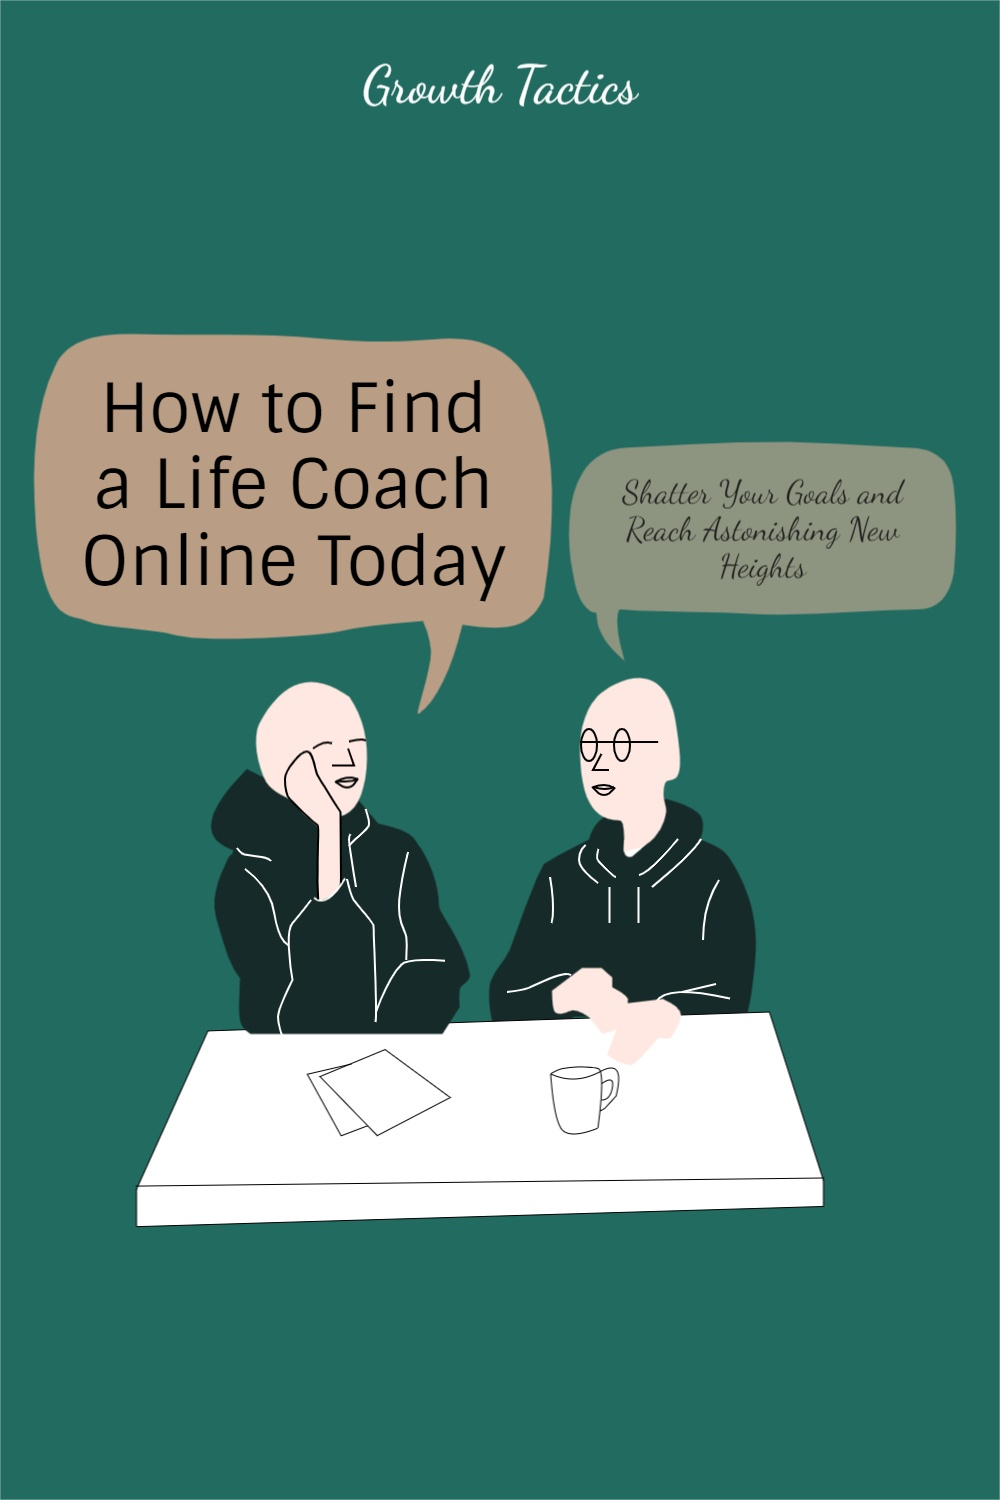 Pinterest image. How to Find a Life Coach Online Today to Shatter Your Goals and Reach Astonishing New Heights